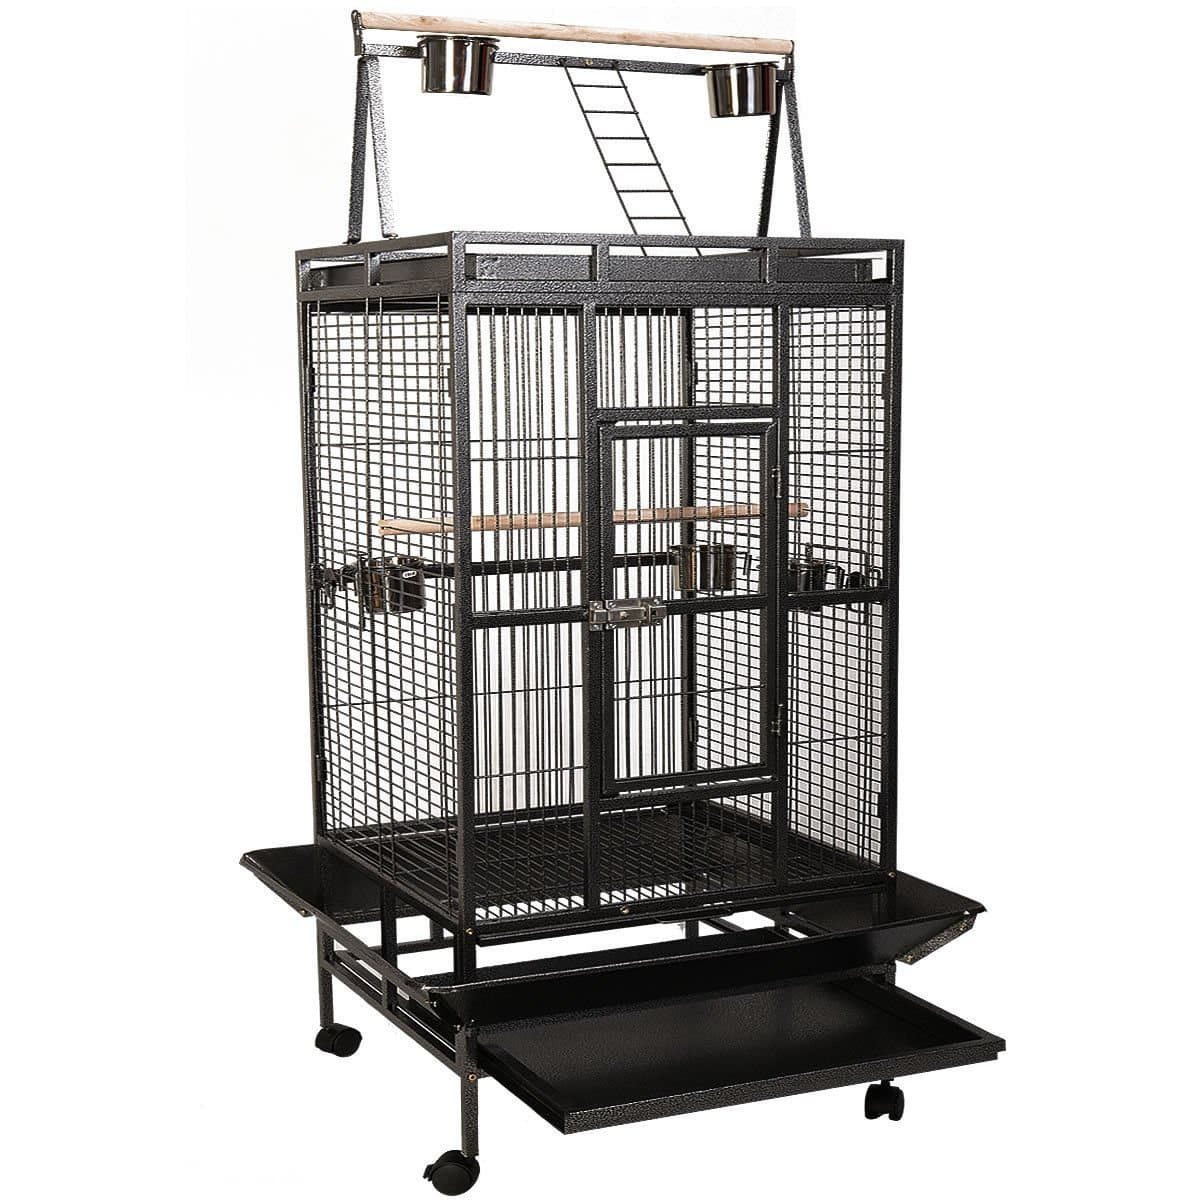 Giantex Bird Cage Large Play Top Parrot Finch Cage